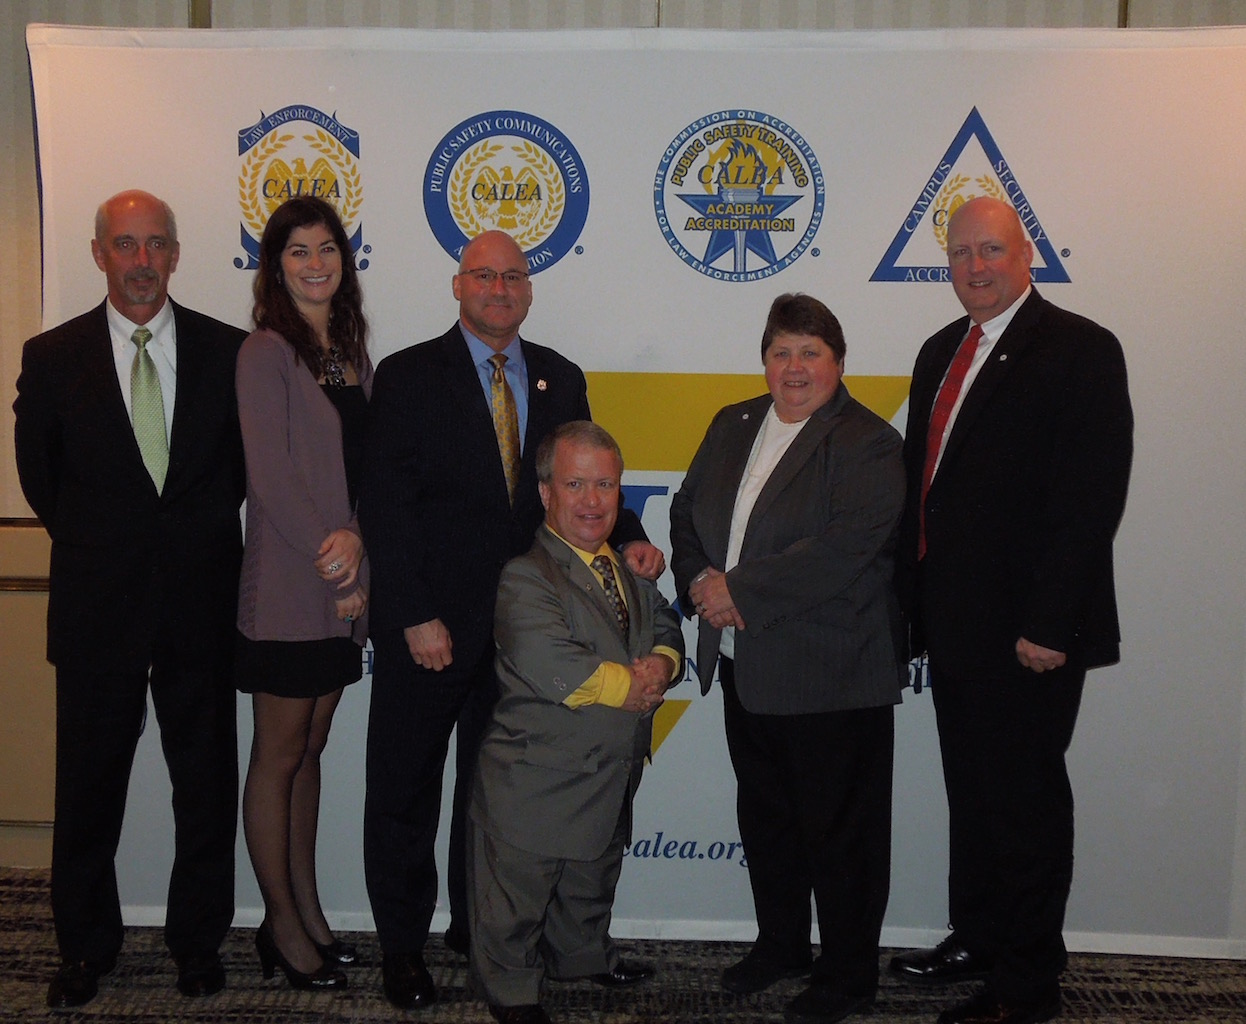 NNEPAC members Mike Raiche, Leanne Wancheck, Greg Murphy, Dennis Healy, Sue Lowrey, and Bill Wilmot pose for a photo after the celebration banquet at the Miami CALEA Conference held in November 2015.